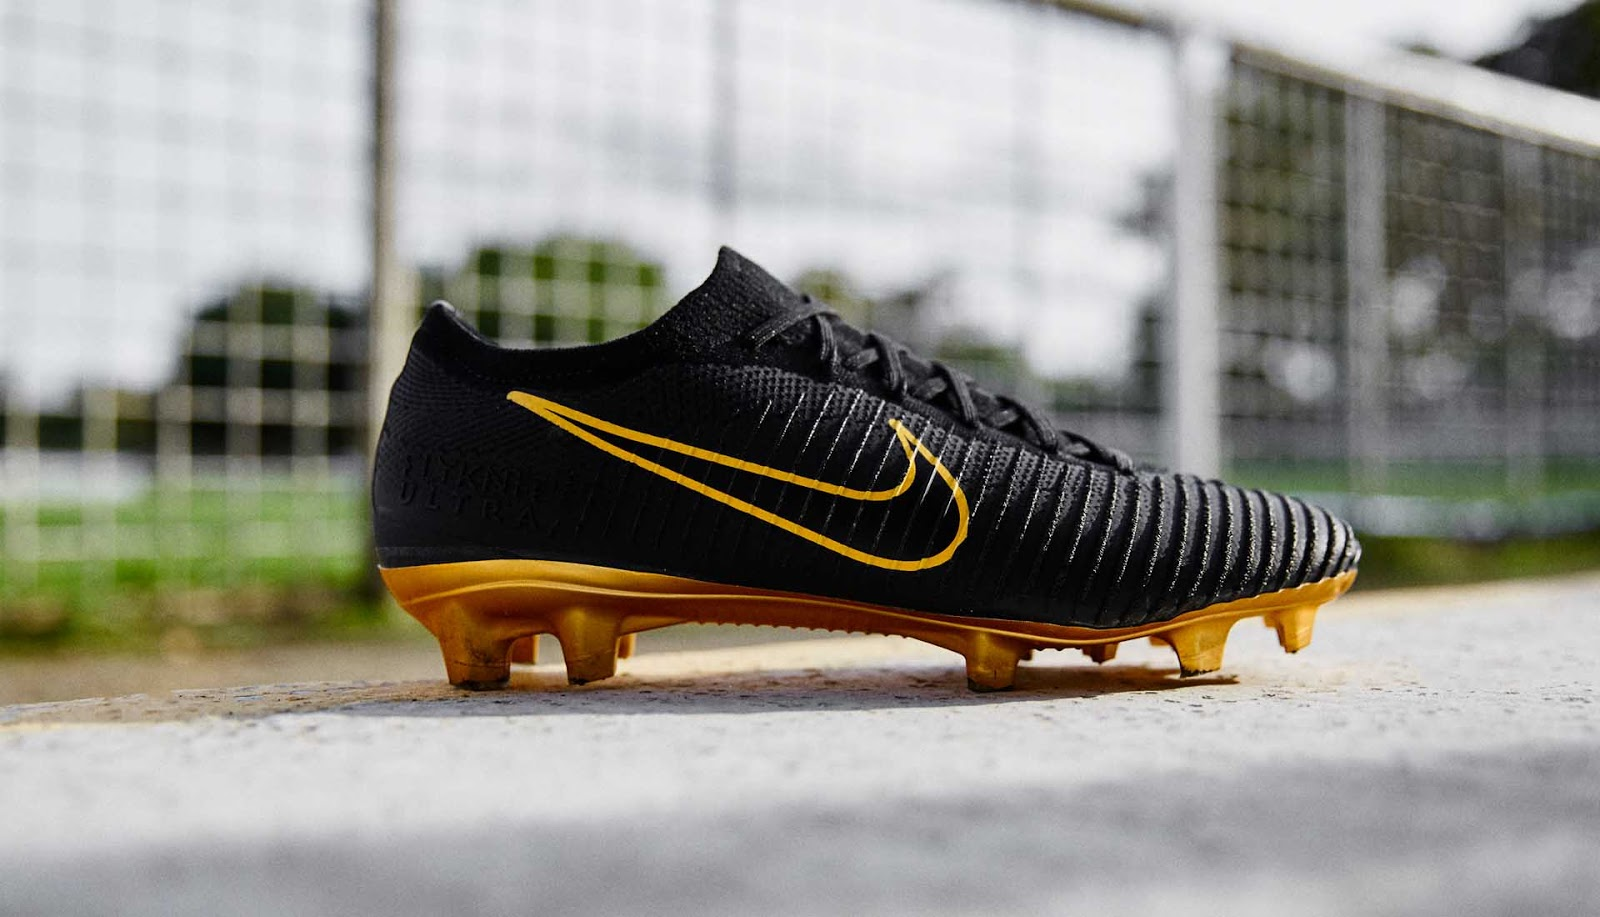 864f7cb9b ... one of two to debut the brand-new Nike football boot model